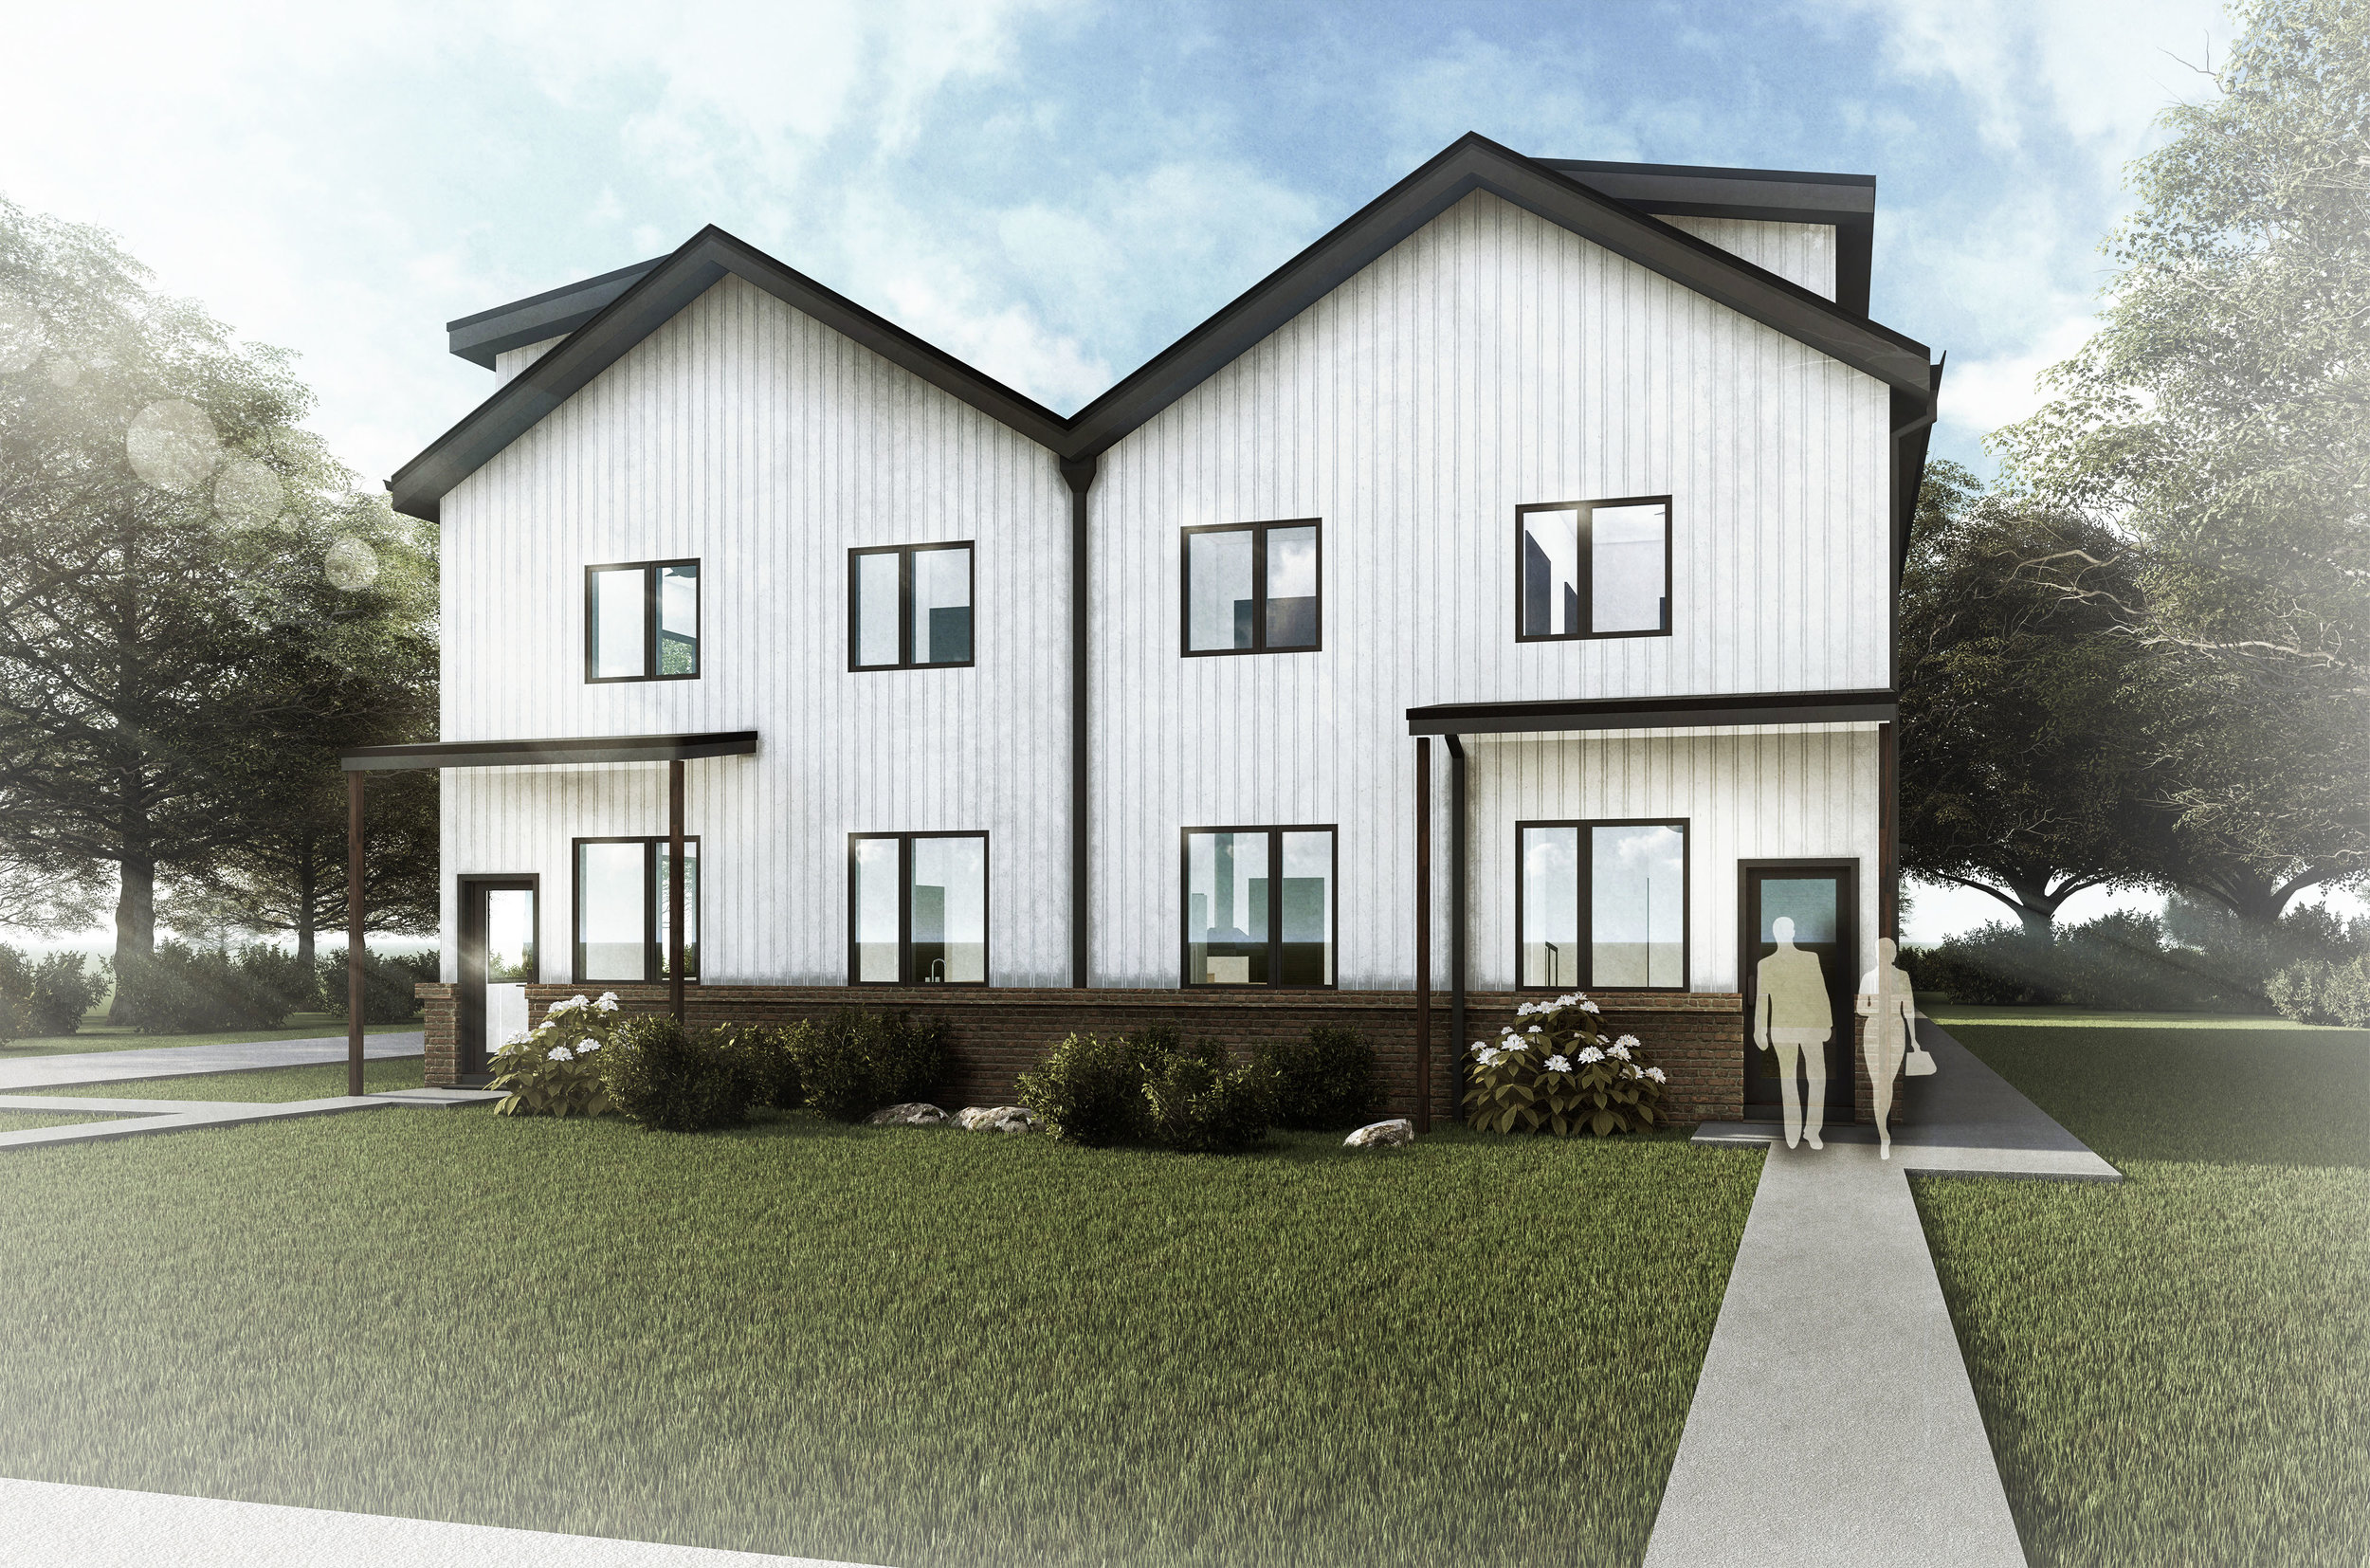 13th Ave 6 Plex Render FINAL Front 20180827.jpg